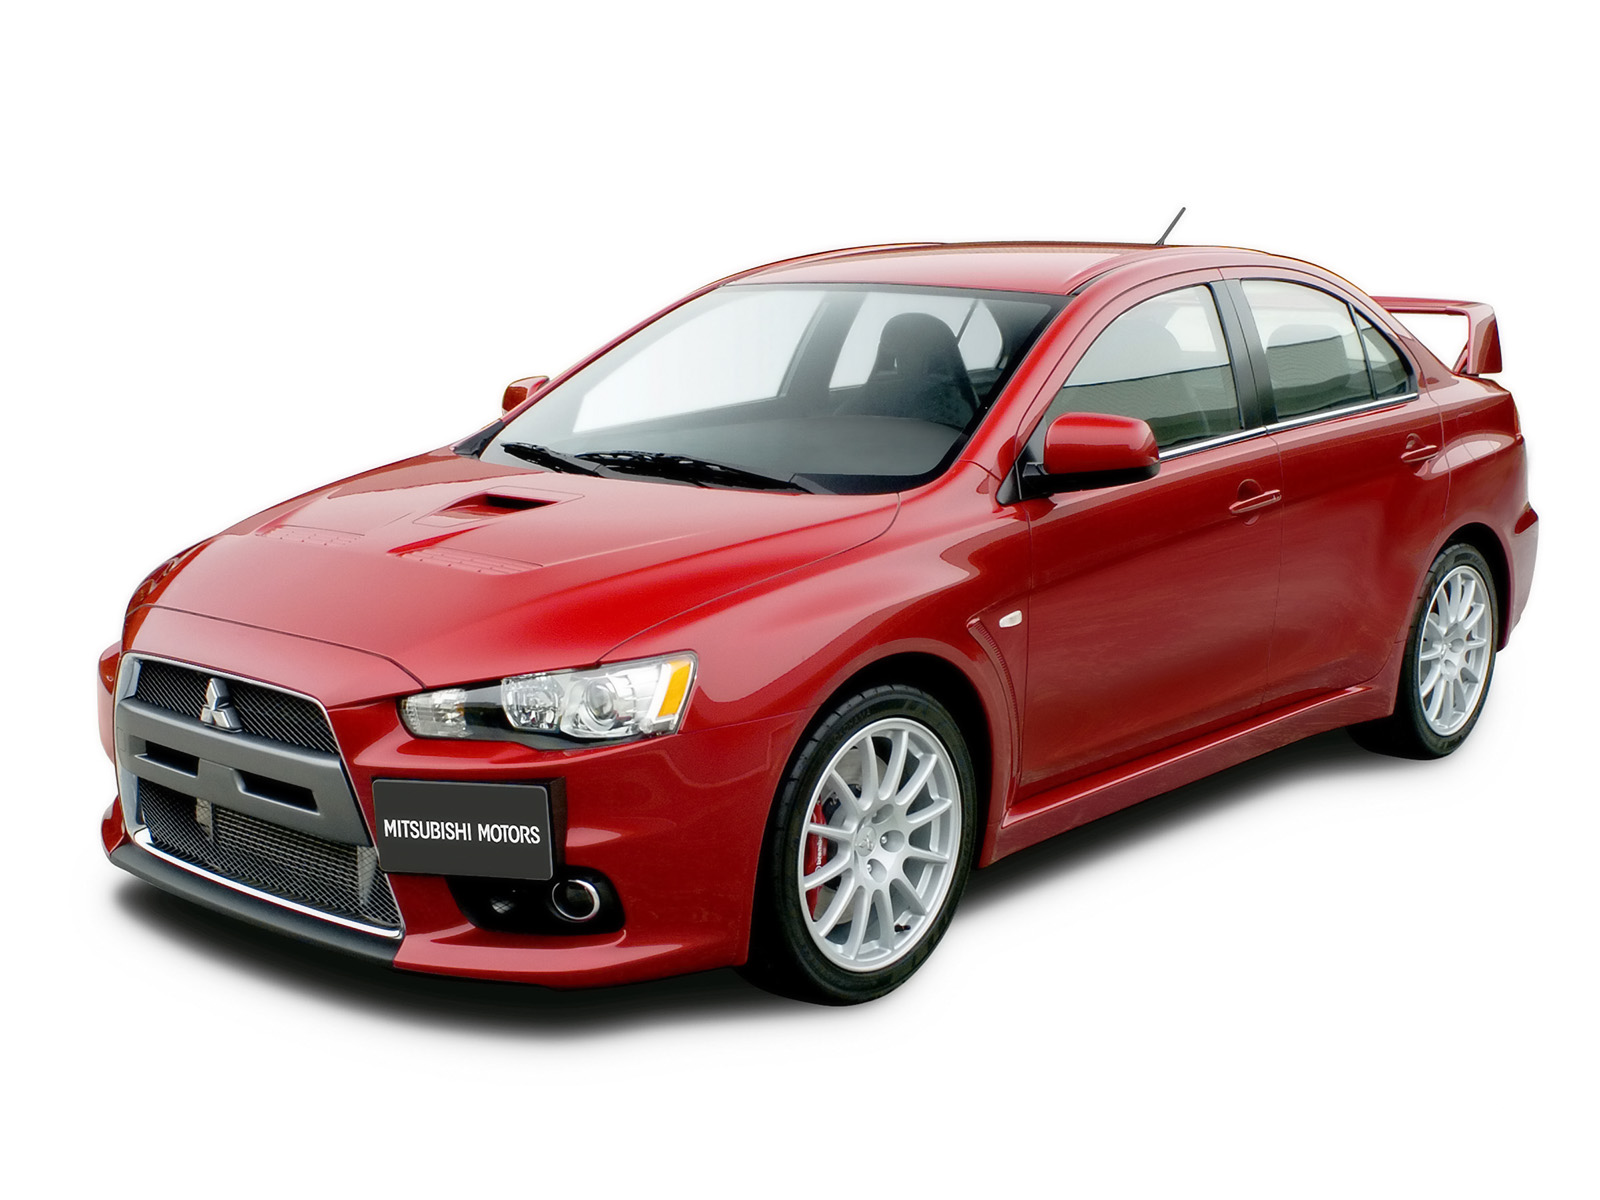 Best Car Models & All About Cars: 2013 Mitsubishi Galant